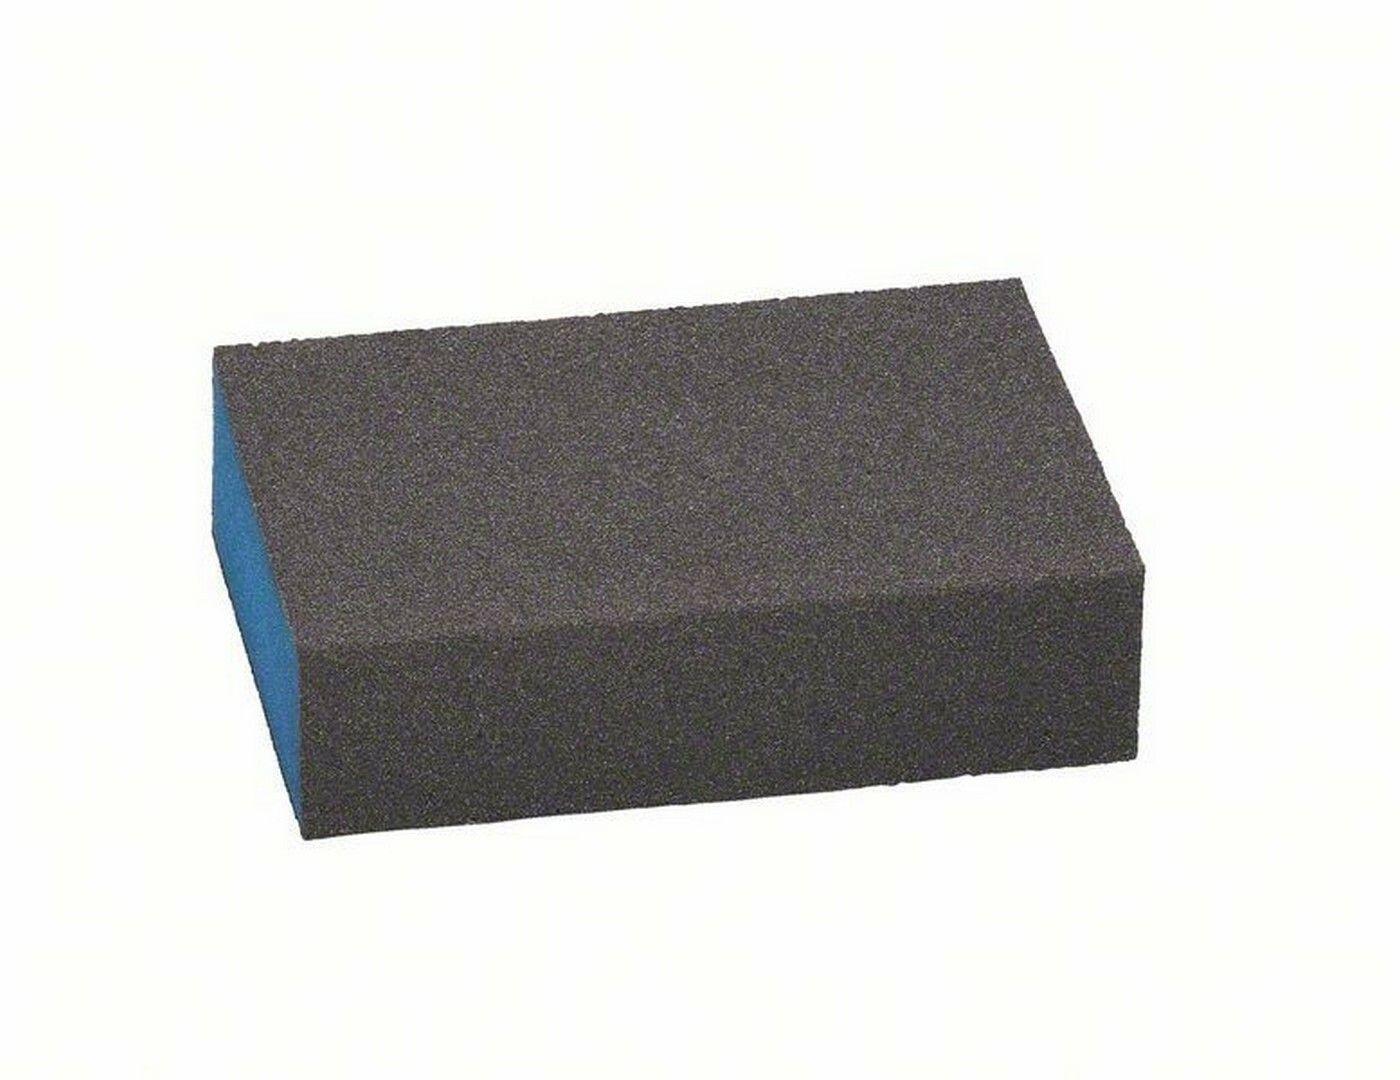 Brusná houba Best for Flat and Edge; 68 x 97 x 27 mm, jemná - 3165140583992 BOSCH